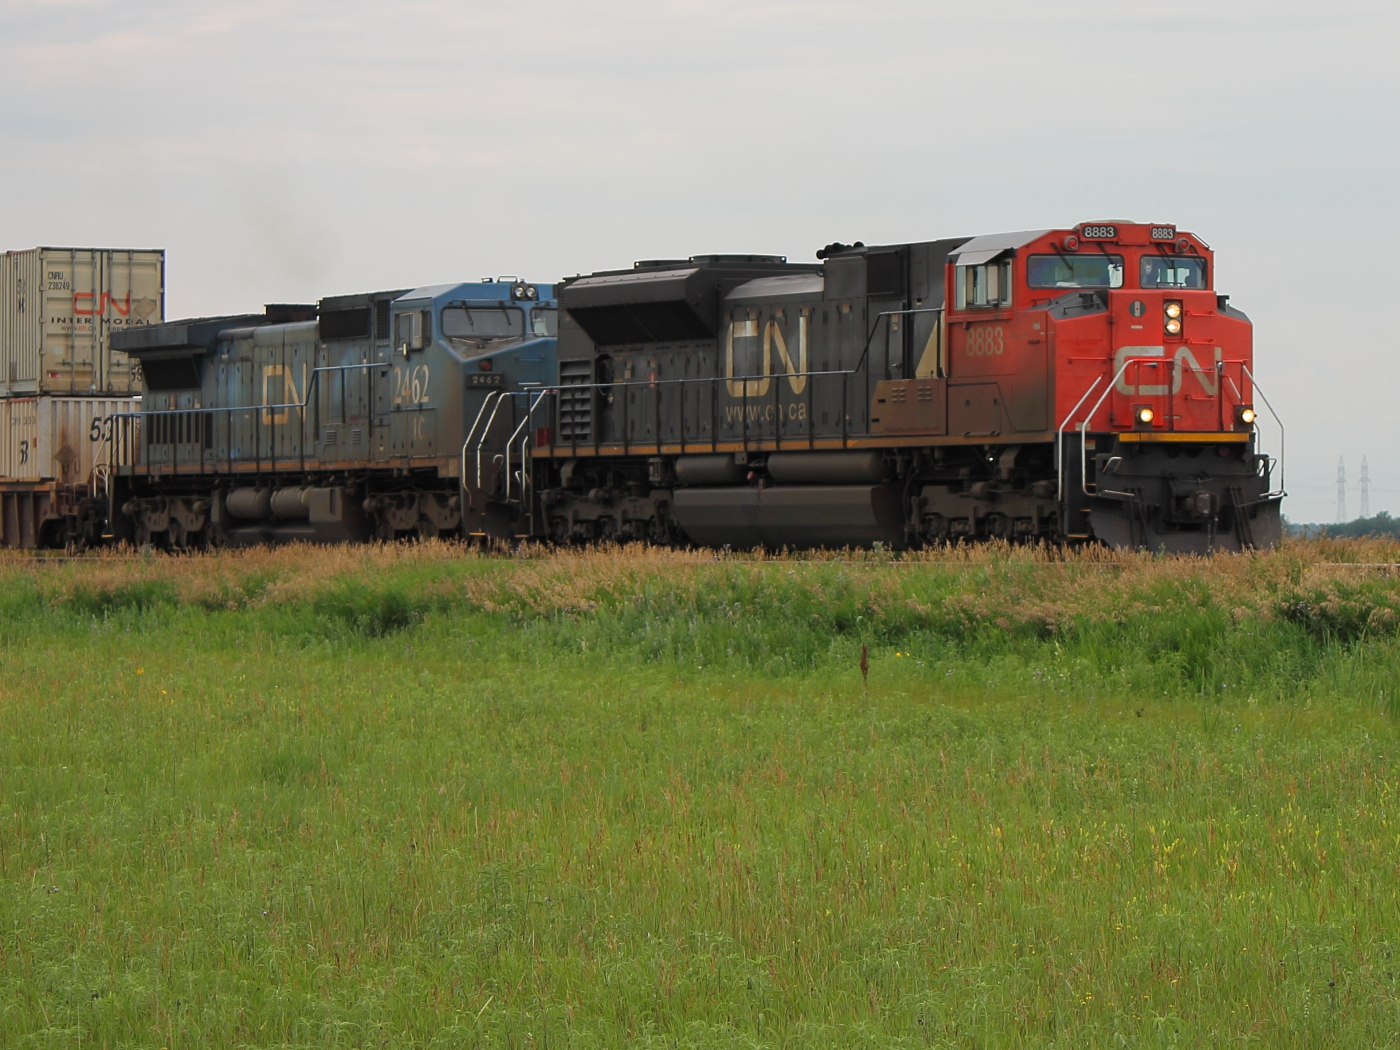 CN 8883 in Winnipeg, MB 2012/07/12